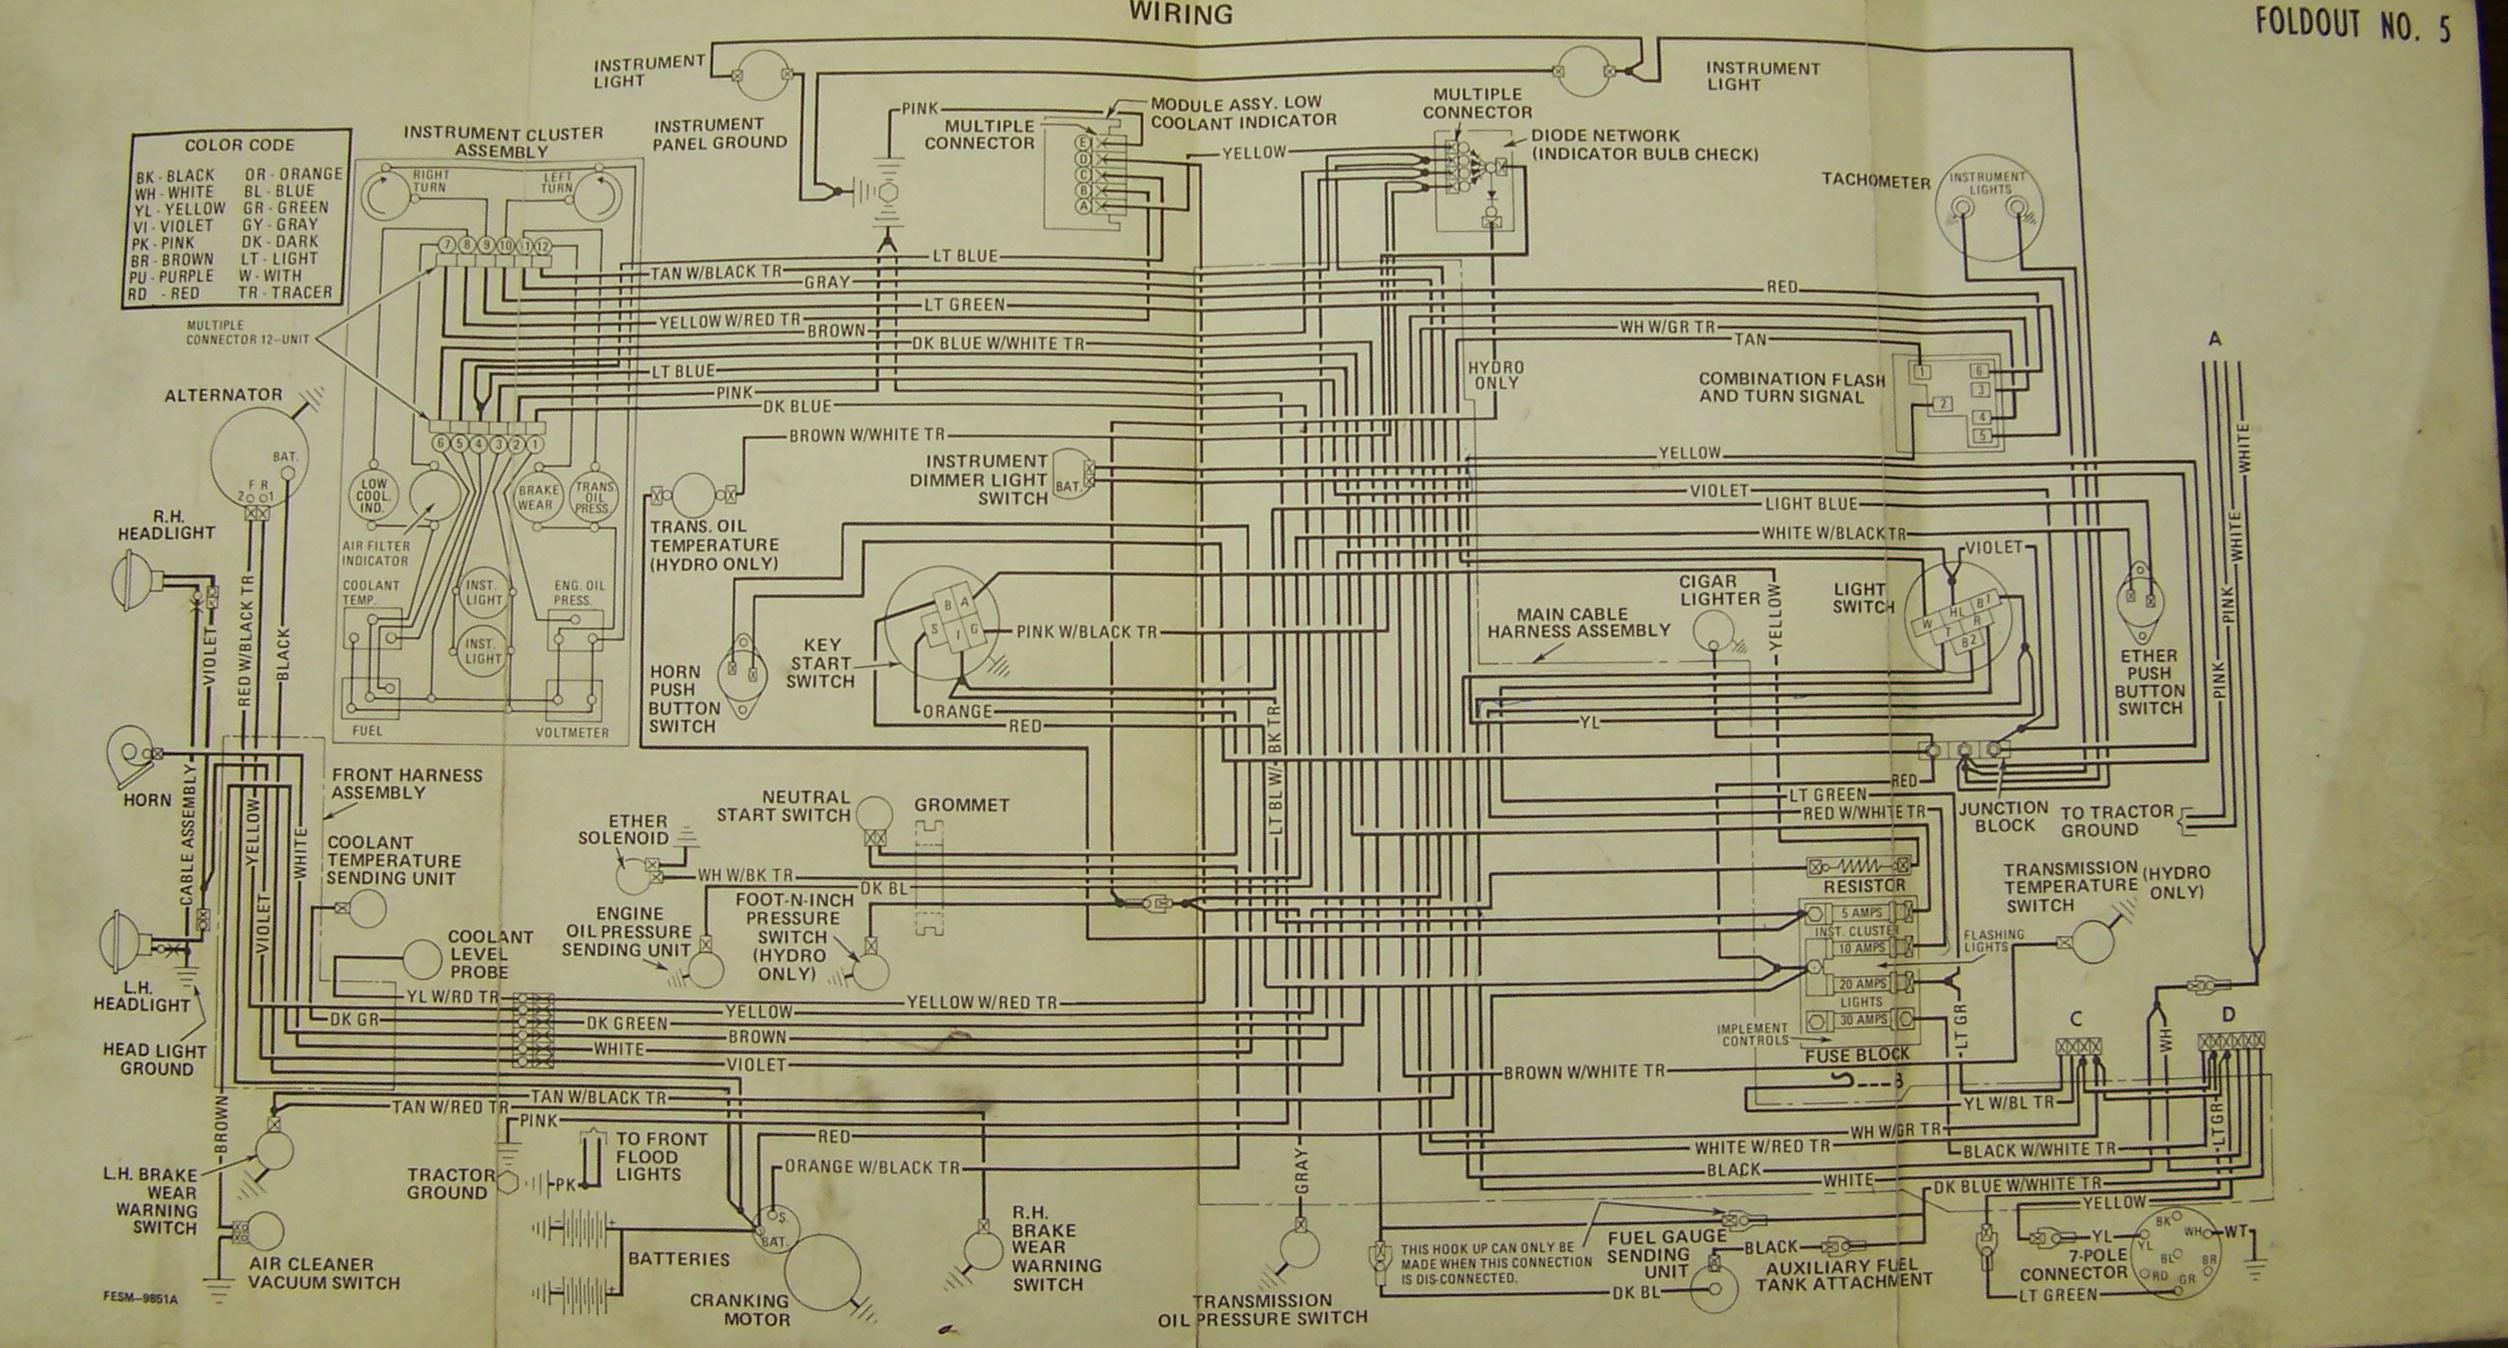 86series5 ih 574 wiring diagram case 430 tractor wiring diagram \u2022 wiring International 4300 Wiring Diagram Schematics at love-stories.co